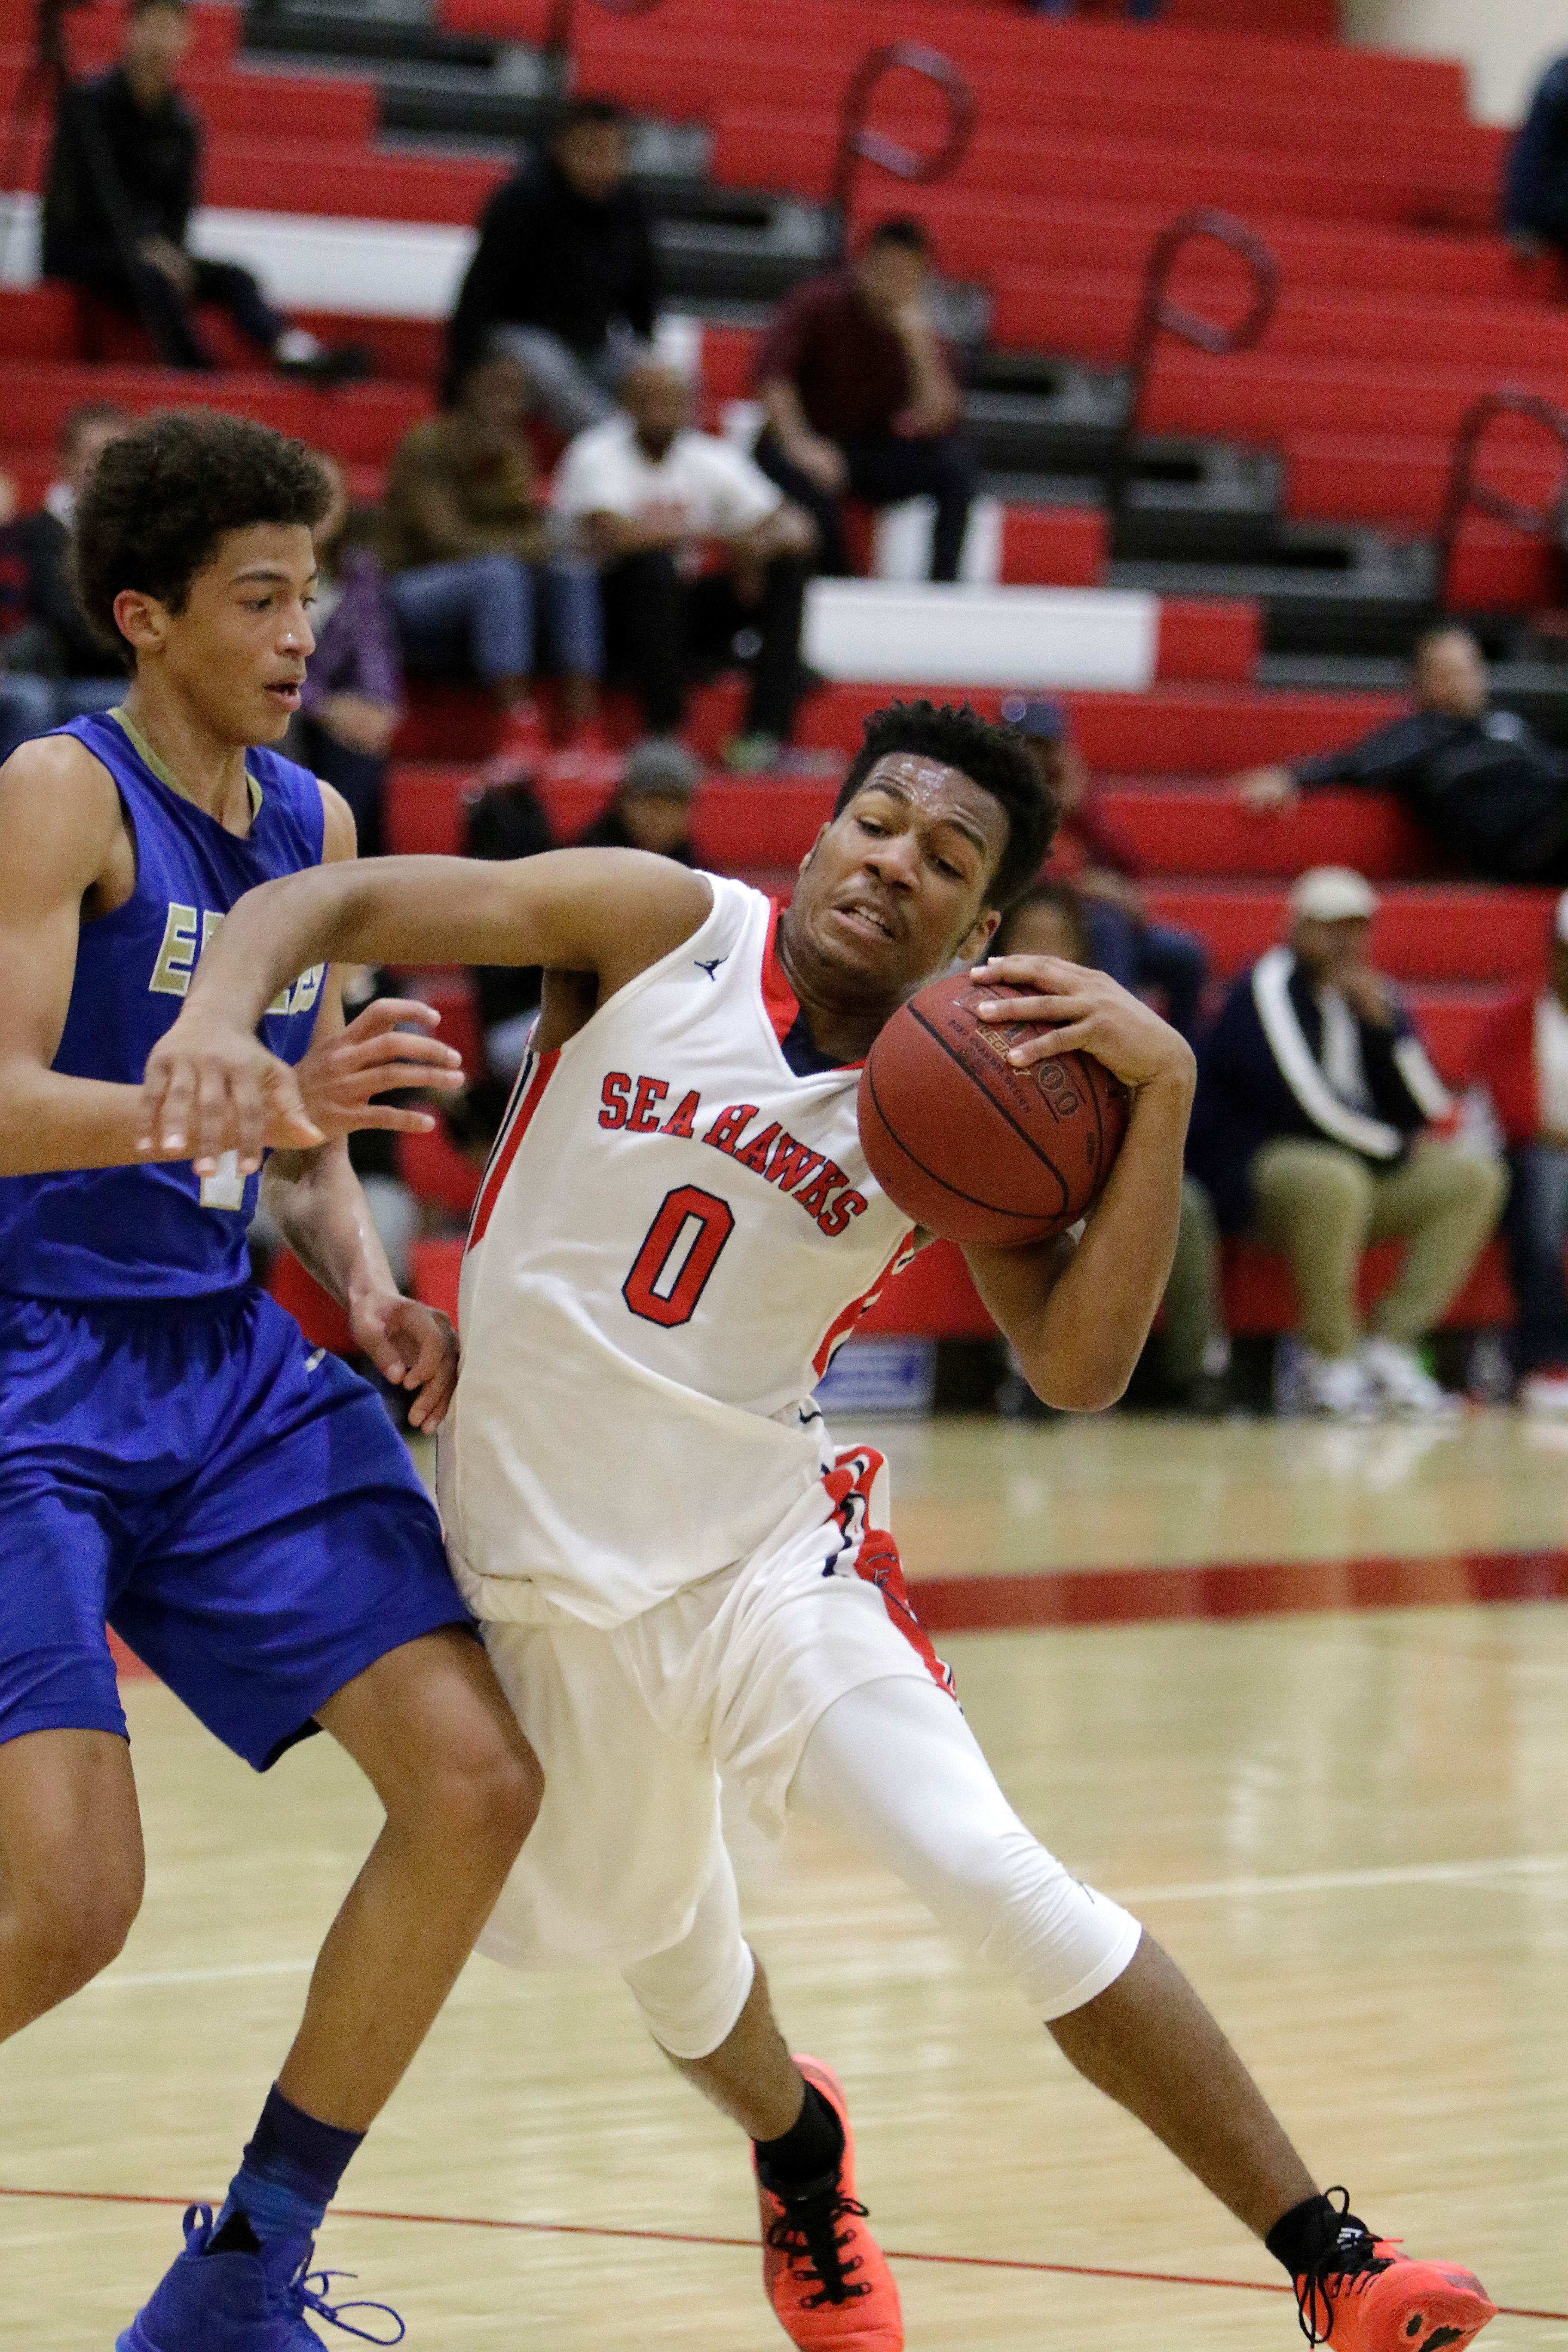 Redondo Union boys hoops team prevails over towering Santa Margarita lineup in CIF playoff victory